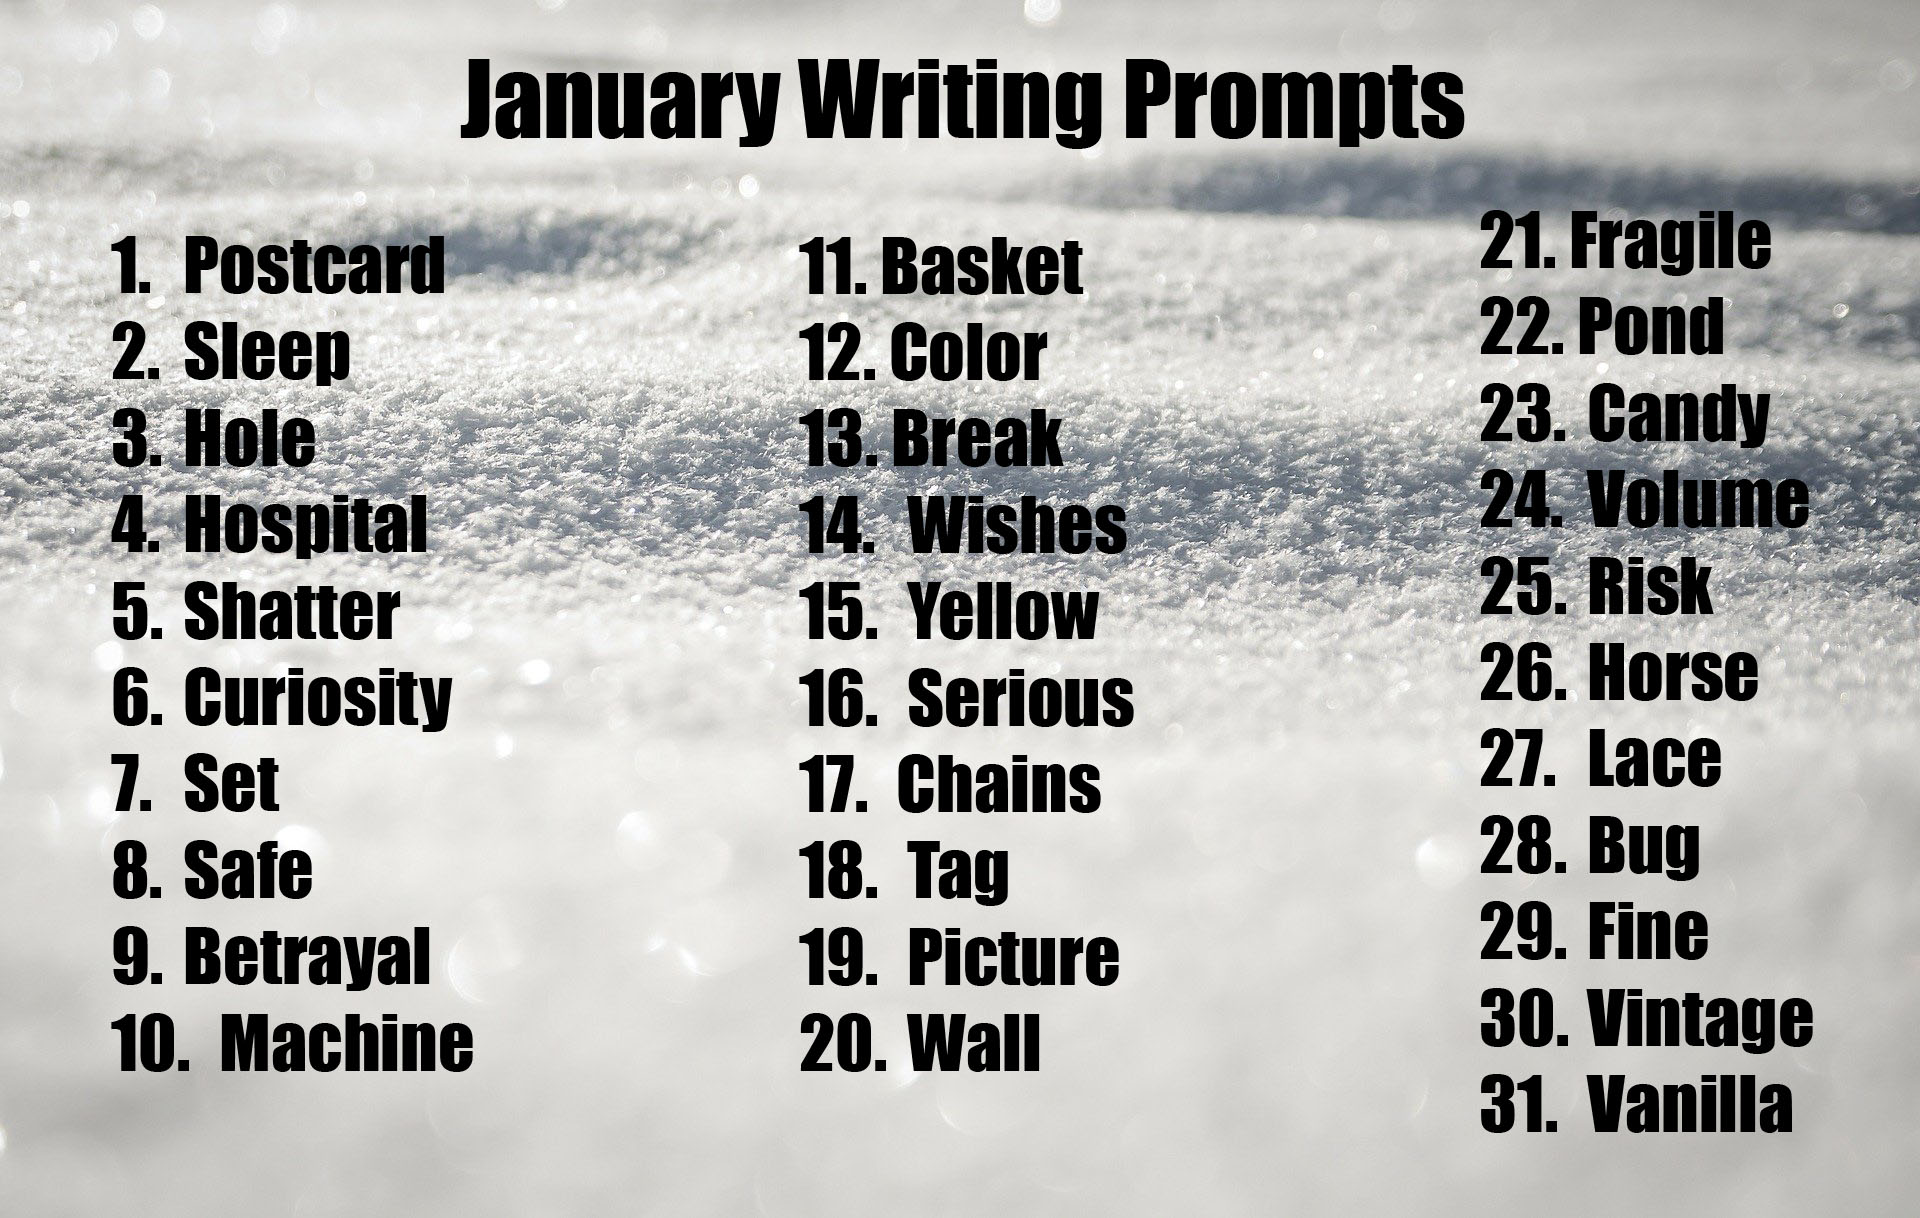 Winter Snow Writing Prompts Lesson Pros January